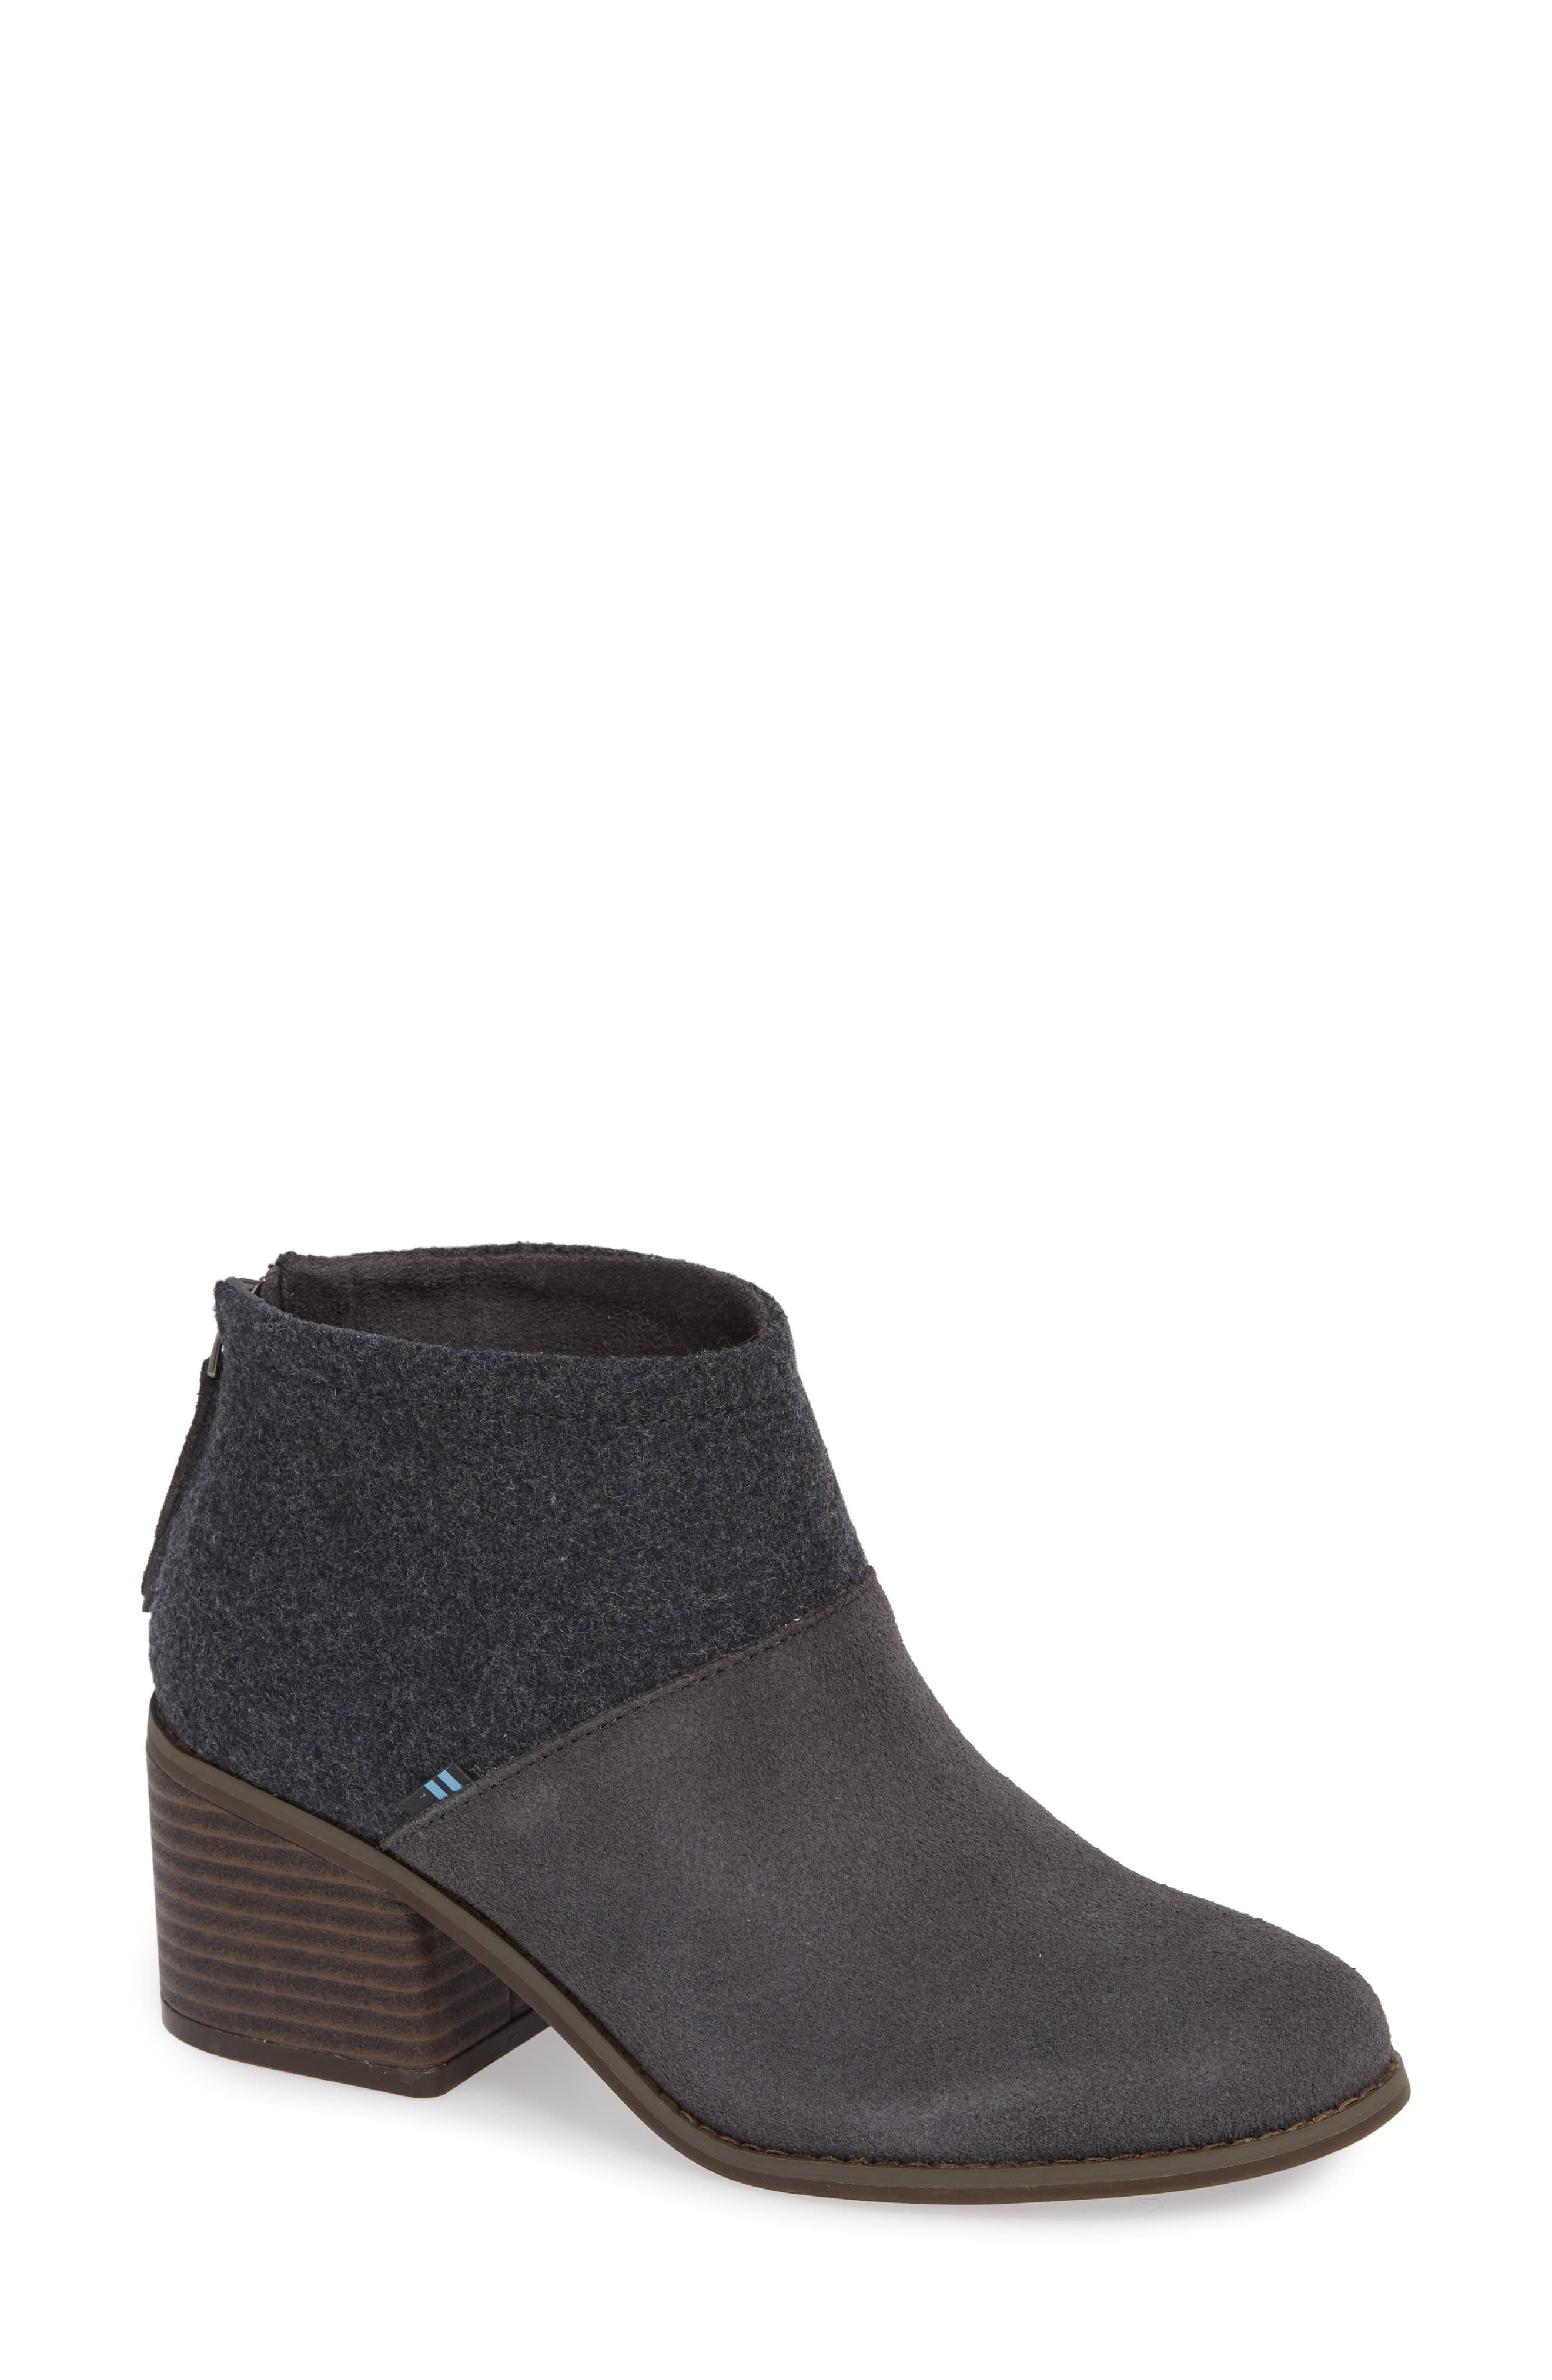 Toms Lacy Bootie, Grey